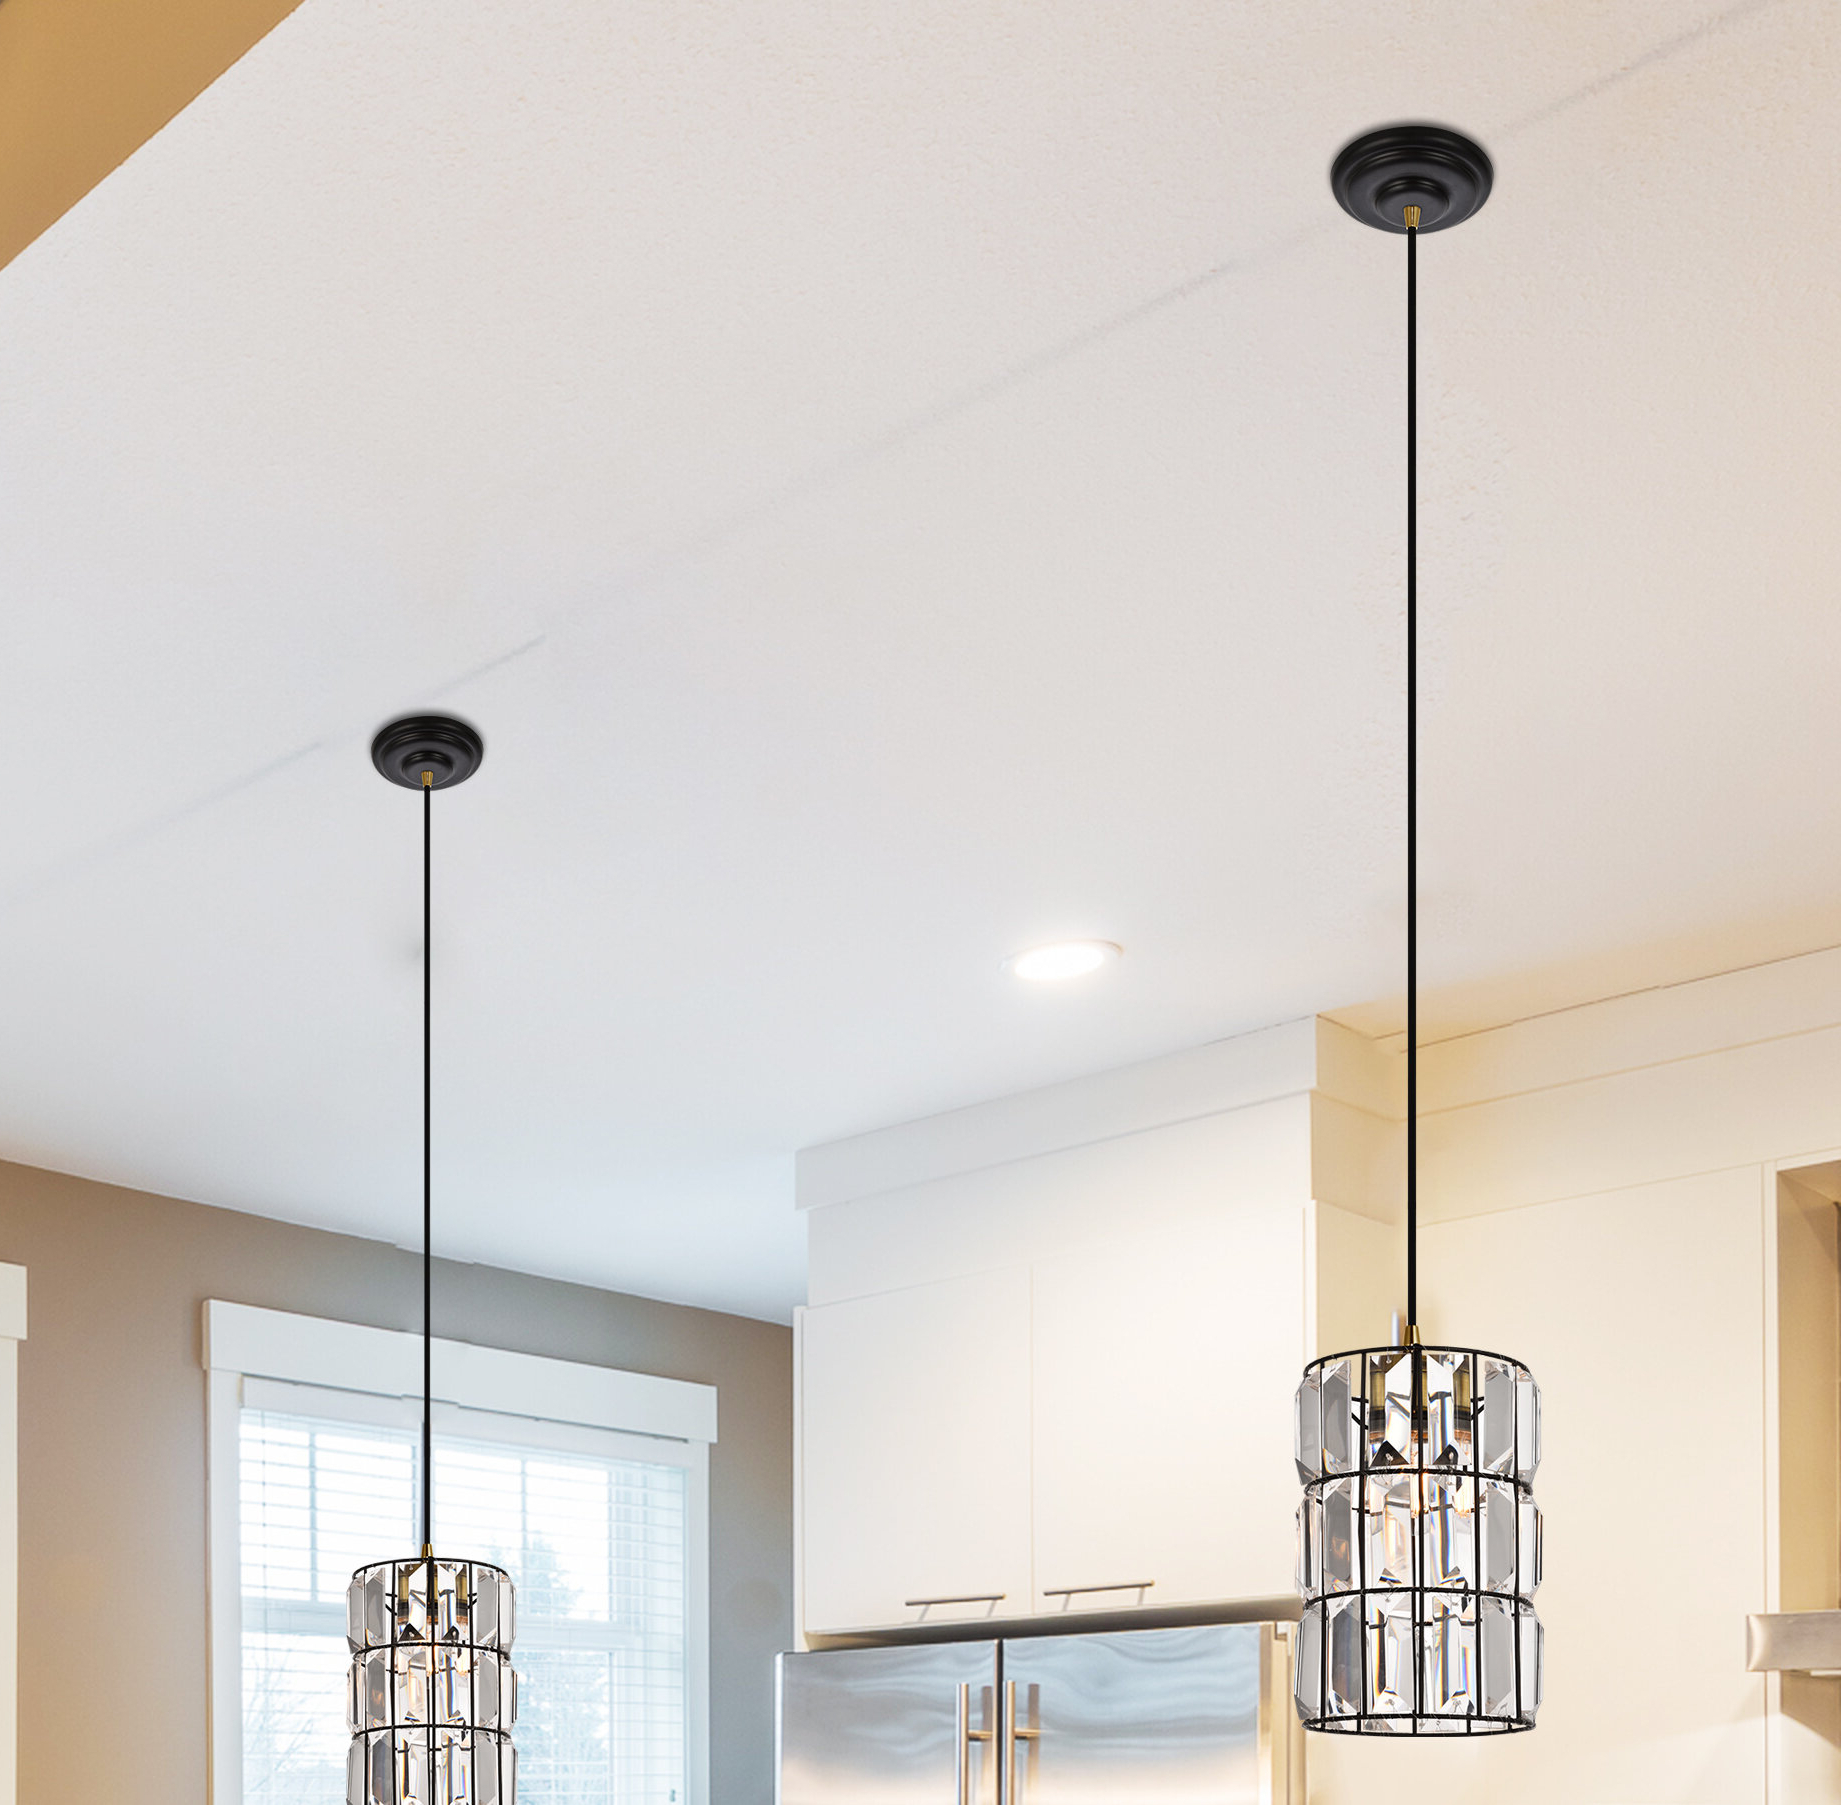 Kraker 1-Light Single Cylinder Pendants with regard to Recent Colston 1-Light Single Cylinder Pendant